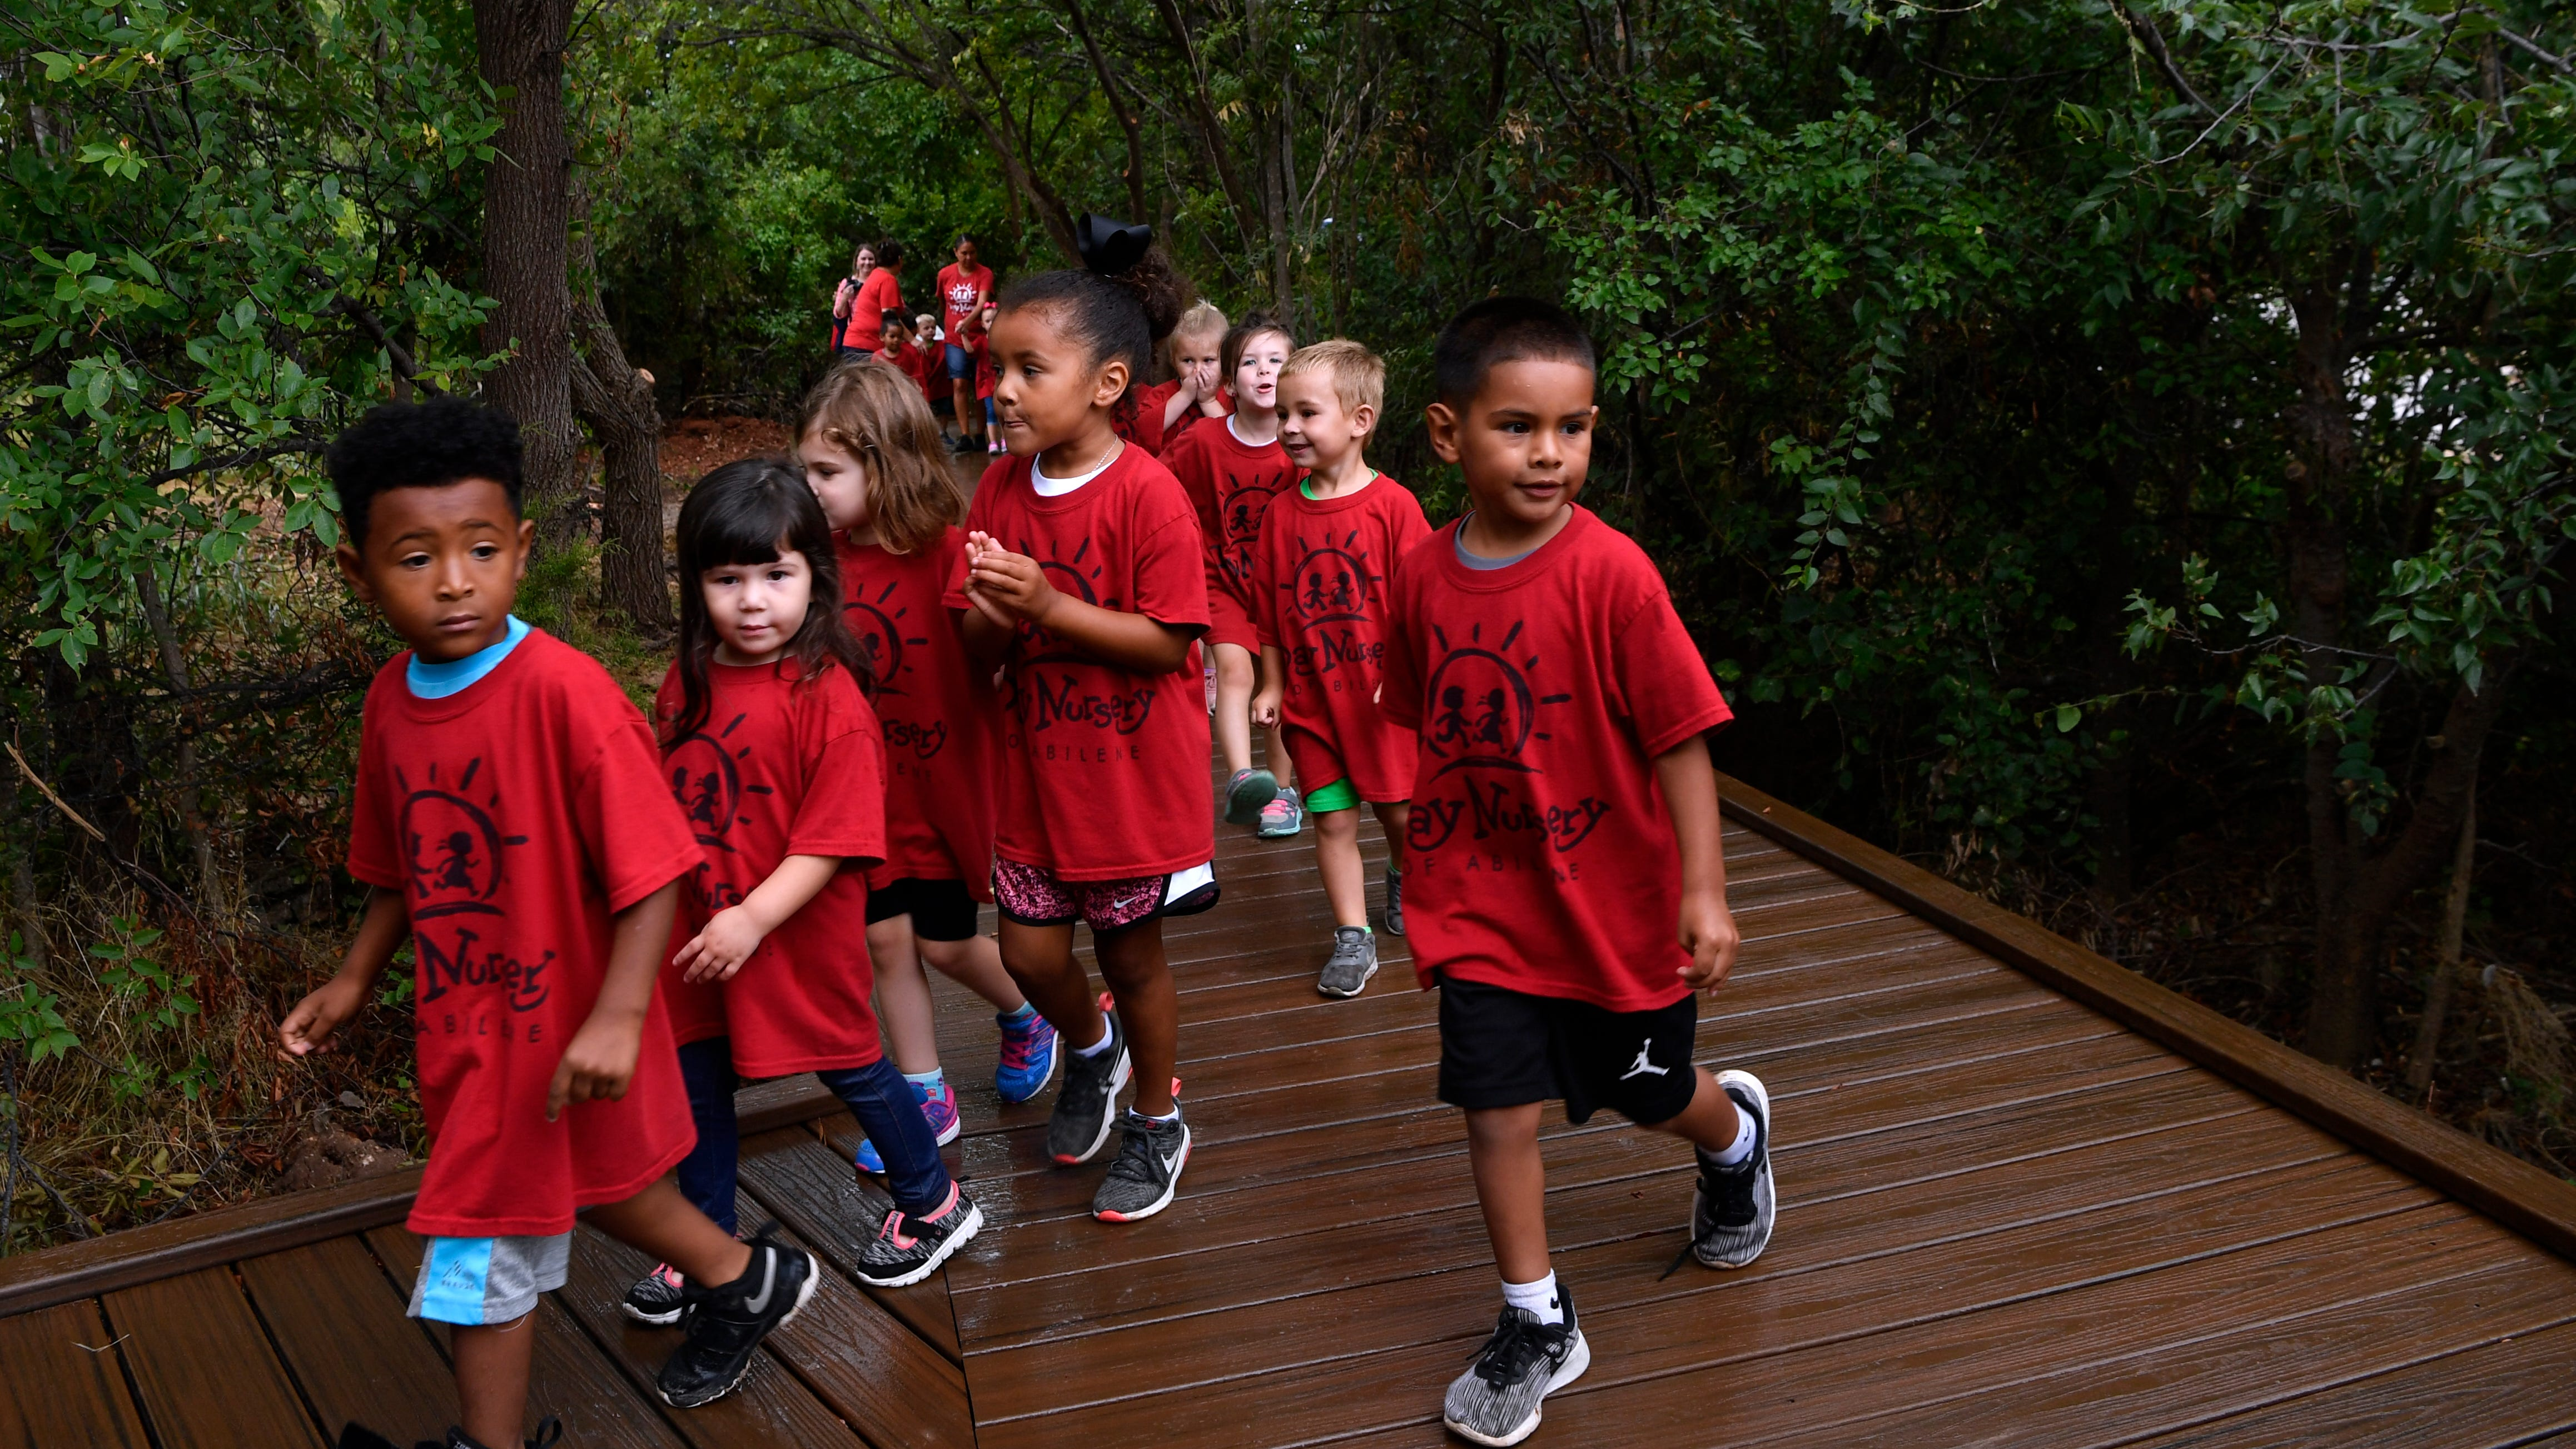 Children from Day Nursery of Abilene visit the Kirby Lake Nature Park, which was dedicated Friday August 10, 2018. The park features boardwalks through the trees, a trail to the lake, and an expansion to the already-present playground.